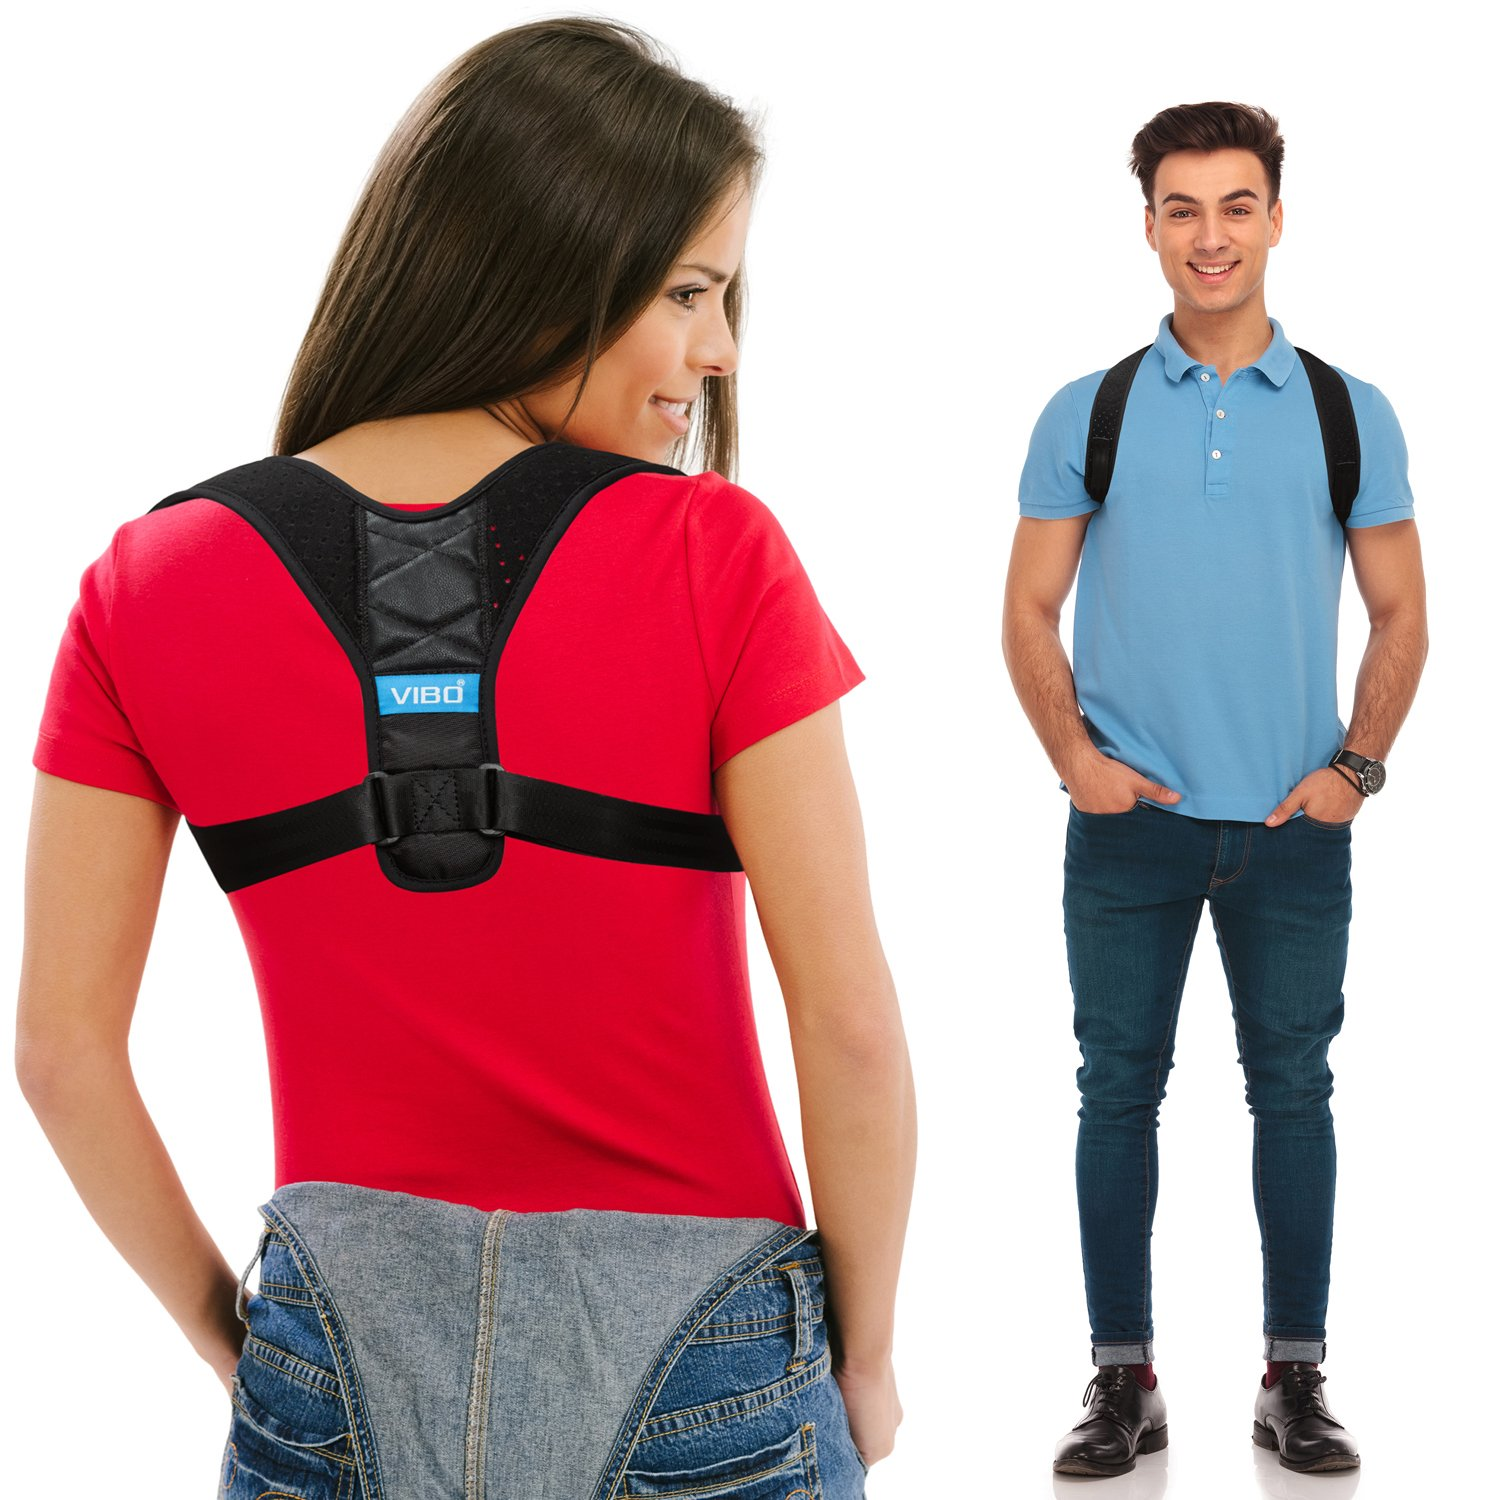 924dd9b8d4 Amazon.com  Posture Corrector for Men and Women - Comfortable Upper Back  Brace Clavicle Support Device for Thoracic Kyphosis and Shoulder - Neck  Pain Relief ...